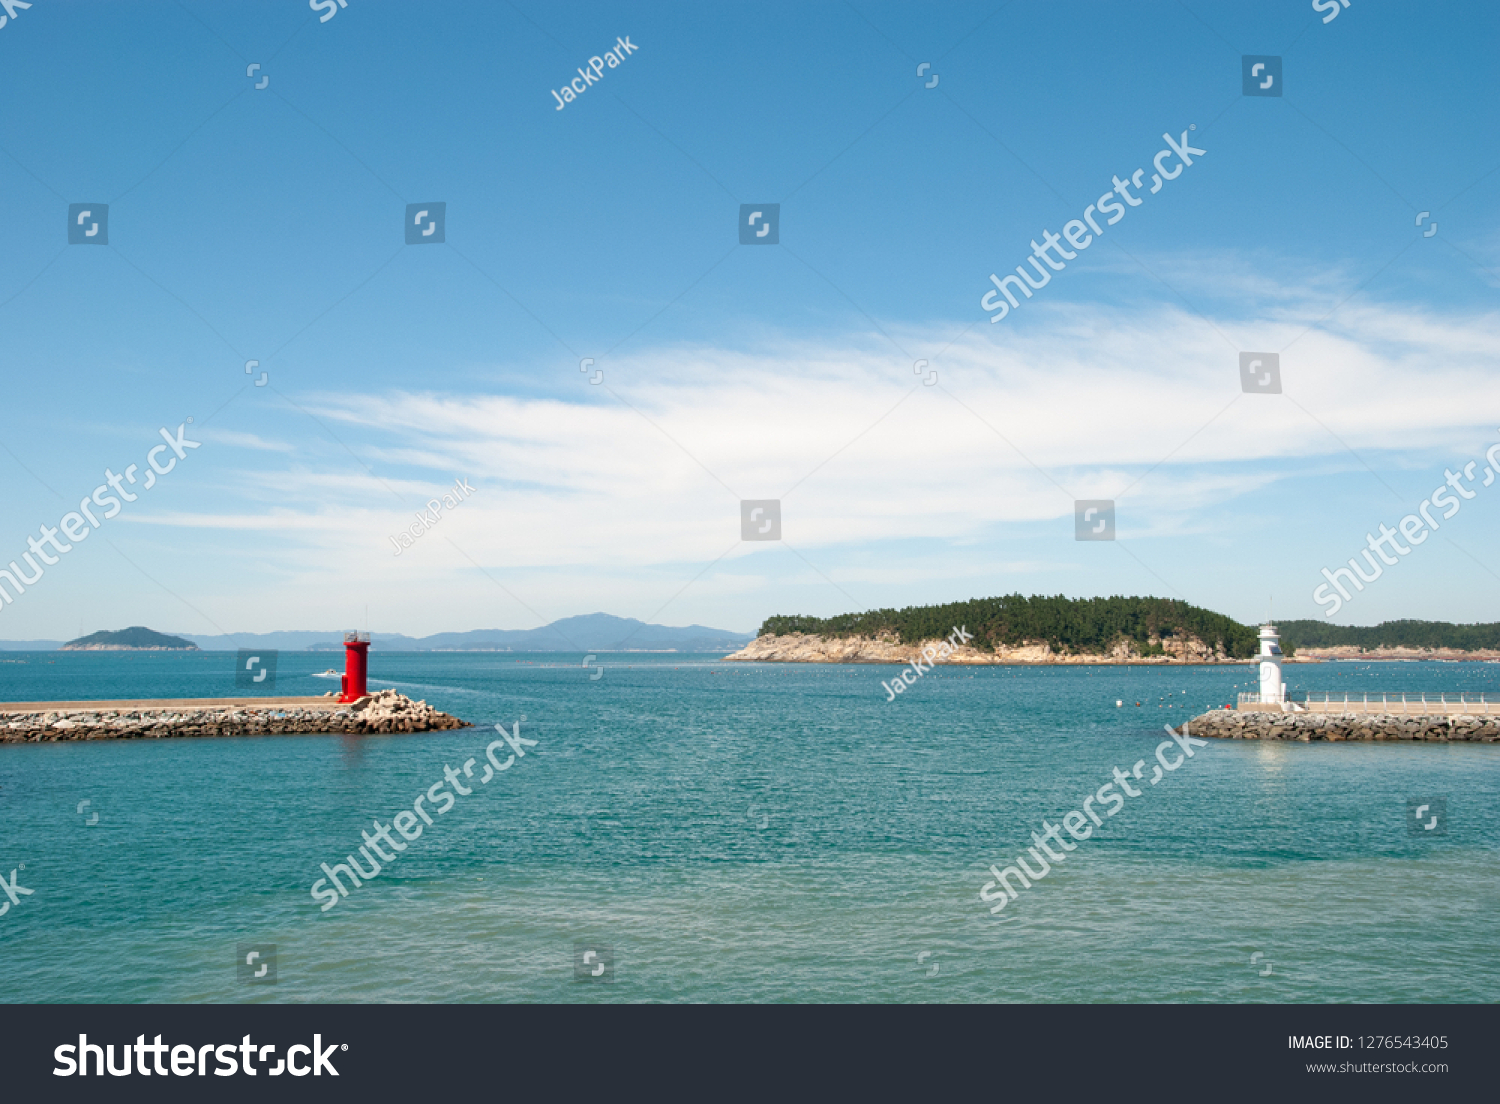 Republic of Korea, Jeollanam-do Wando-gun Cheongsando Island is facing the red lighthouse and the white lighthouse of the breakwater. #1276543405